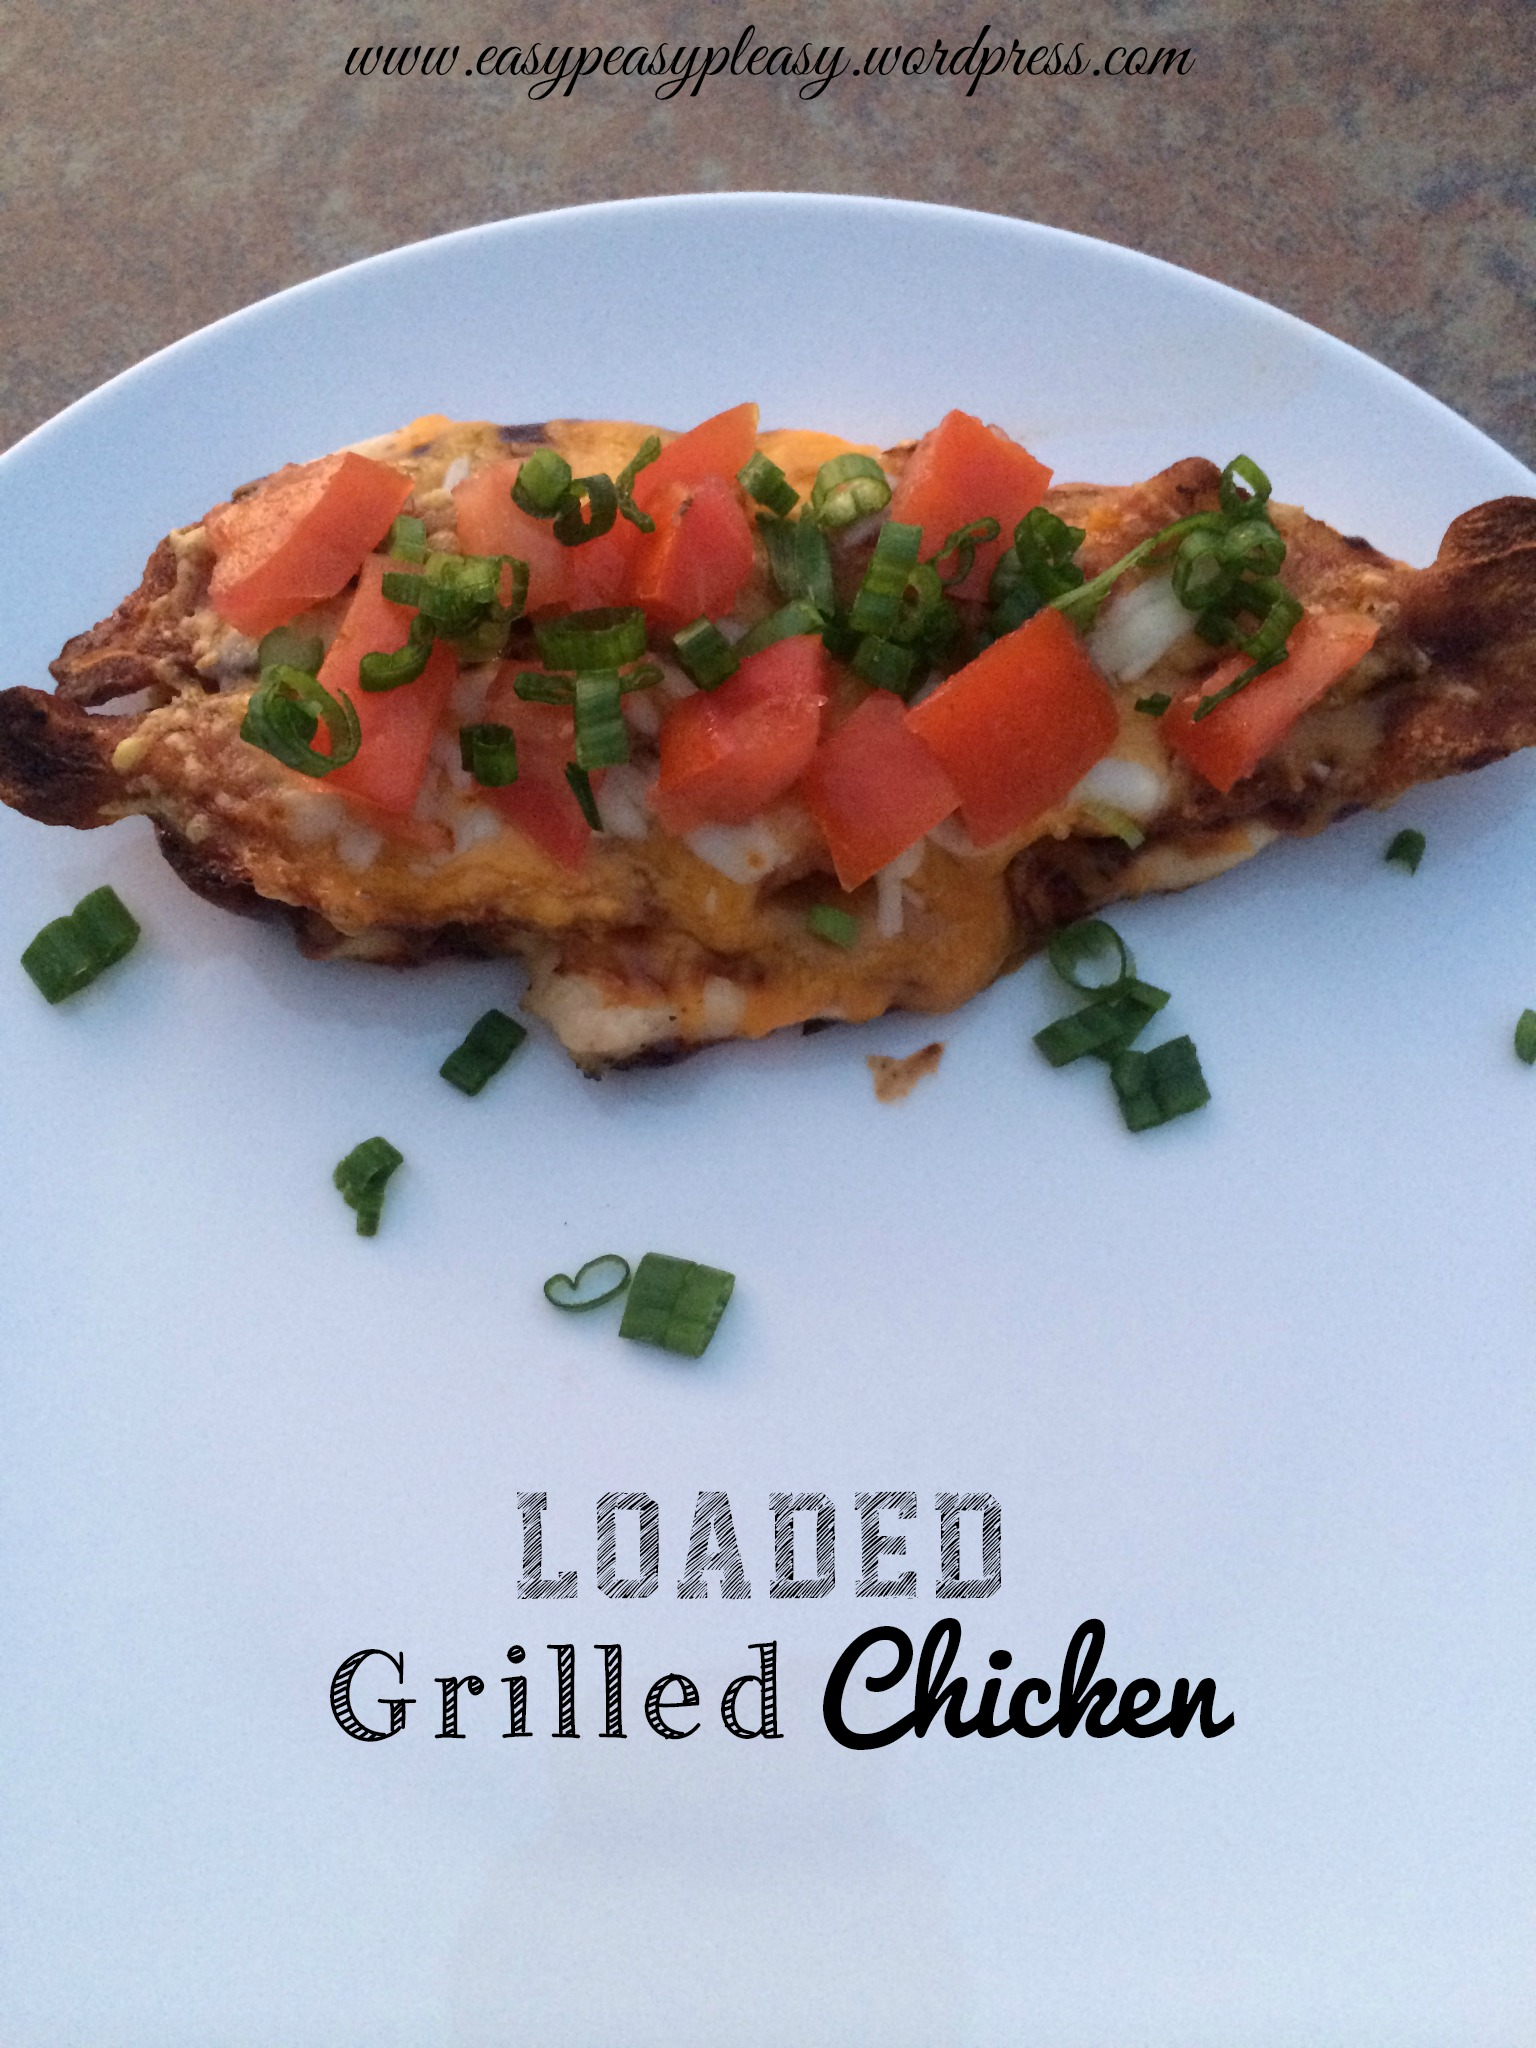 Loaded Grilled Chicken Recipe at www.easypeasypleasy.wordpress